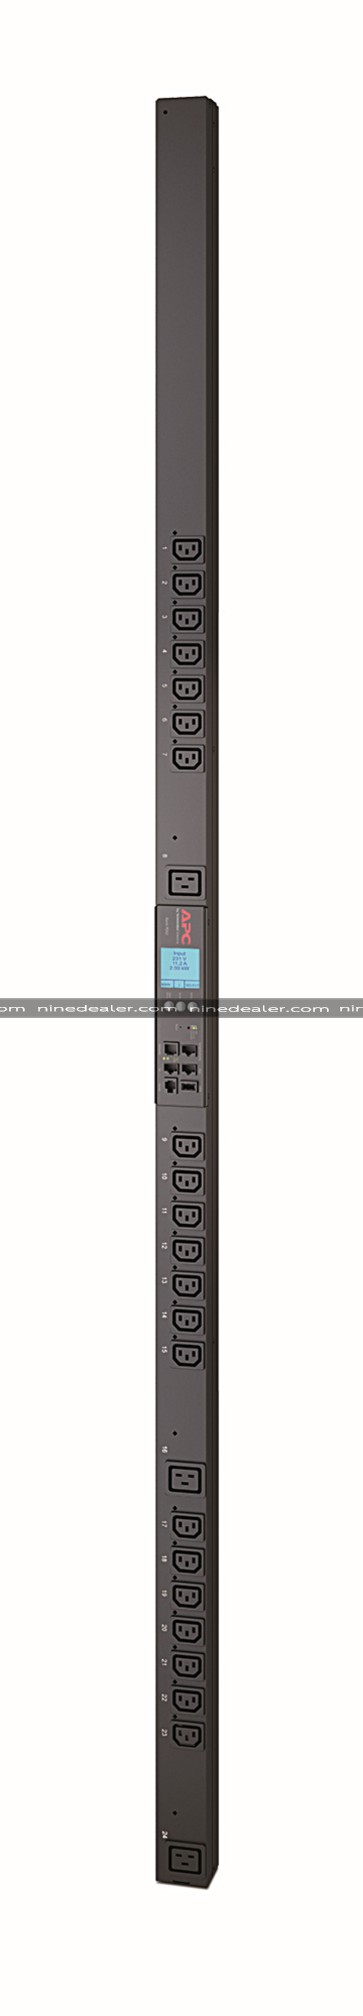 Rack PDU 2G, Metered by Outlet with Switching, ZeroU, 16A, 230V, (21) C13 & (3) C19